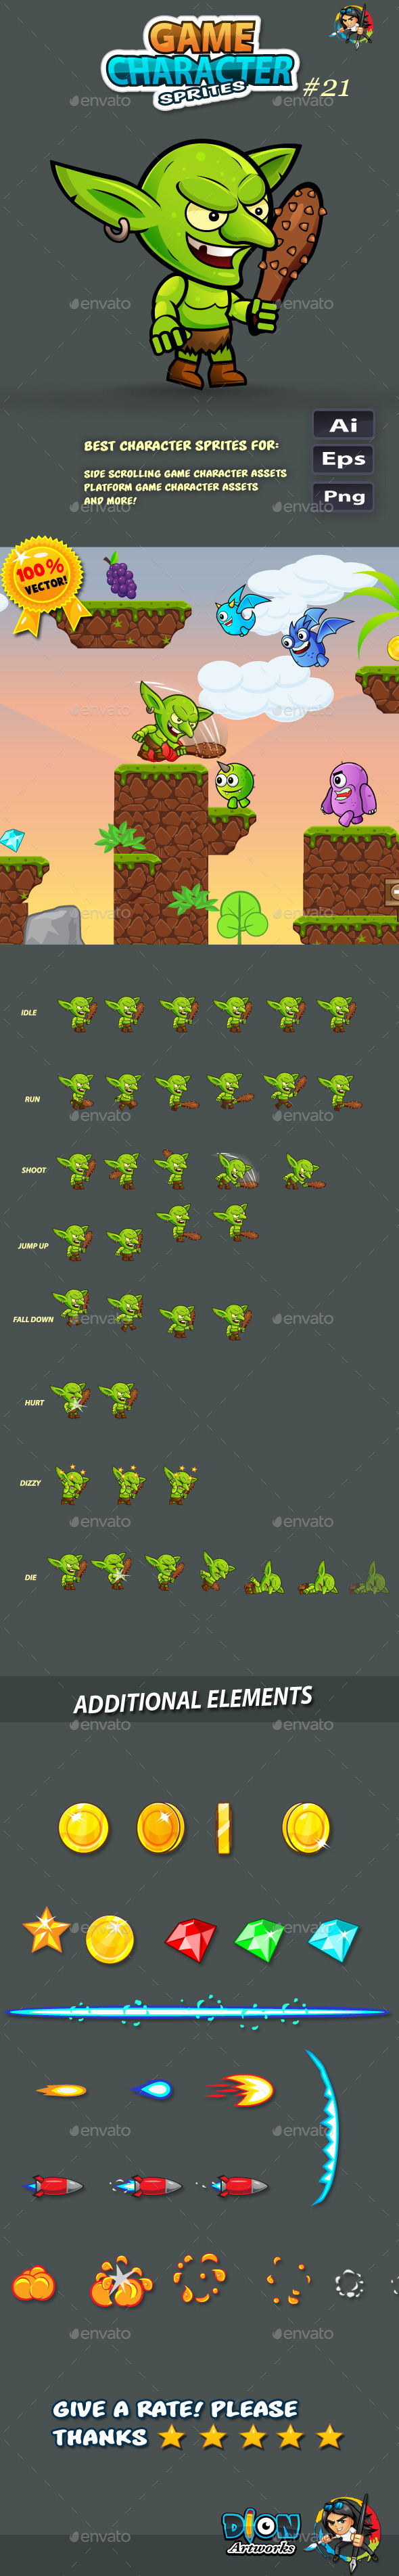 GraphicRiver Goblin 2D Game Character Sprites 21 11394958